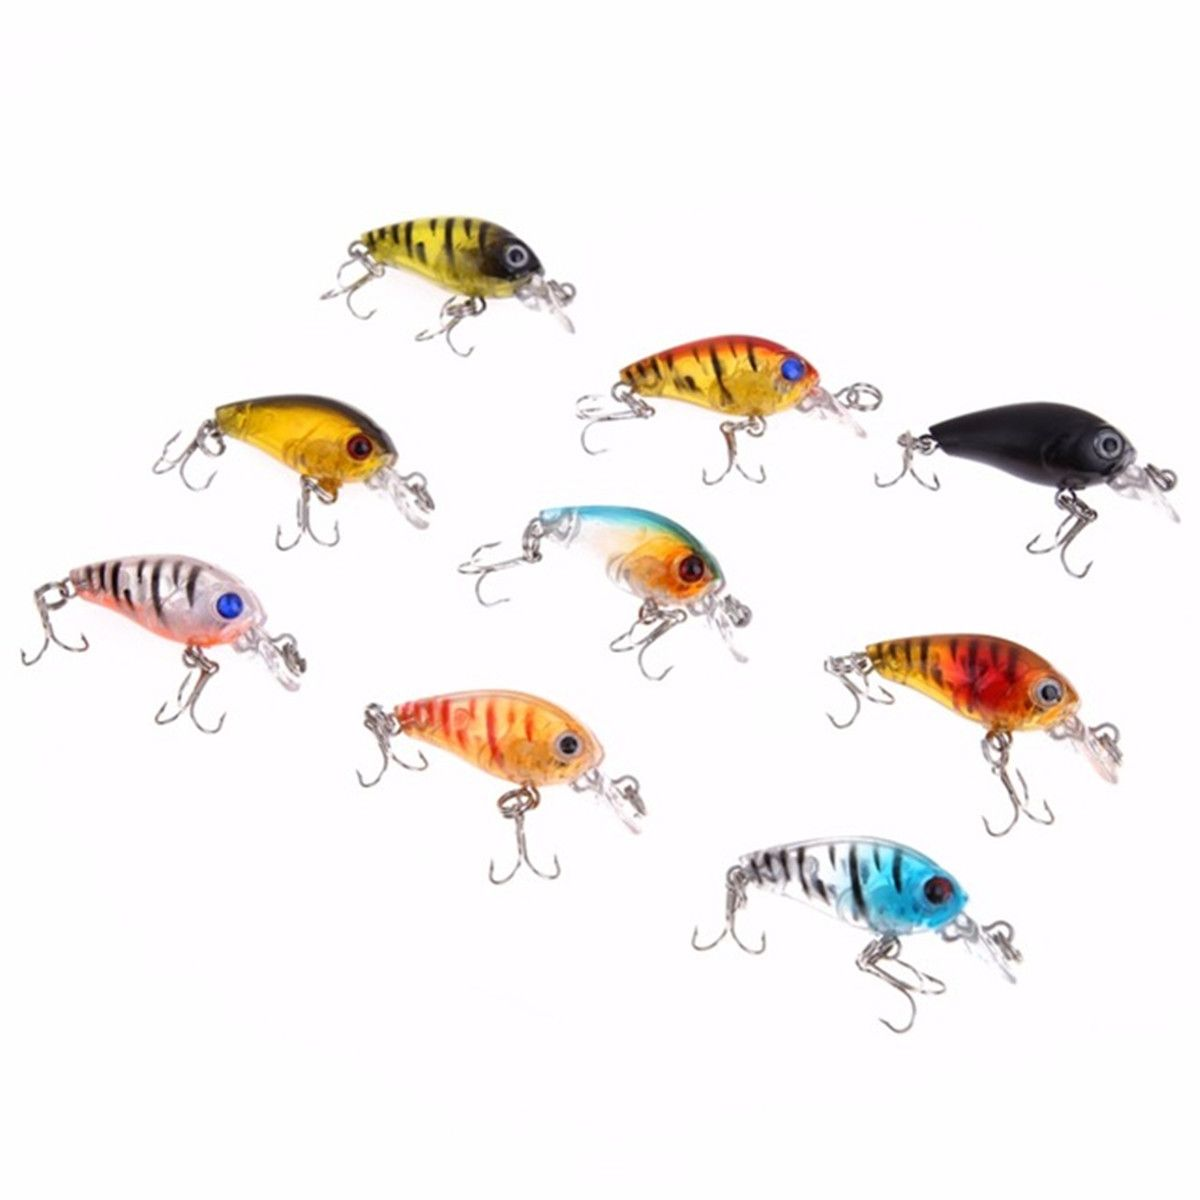 900 Pesca Ideas Fish Fishing Lures Fishing Tools